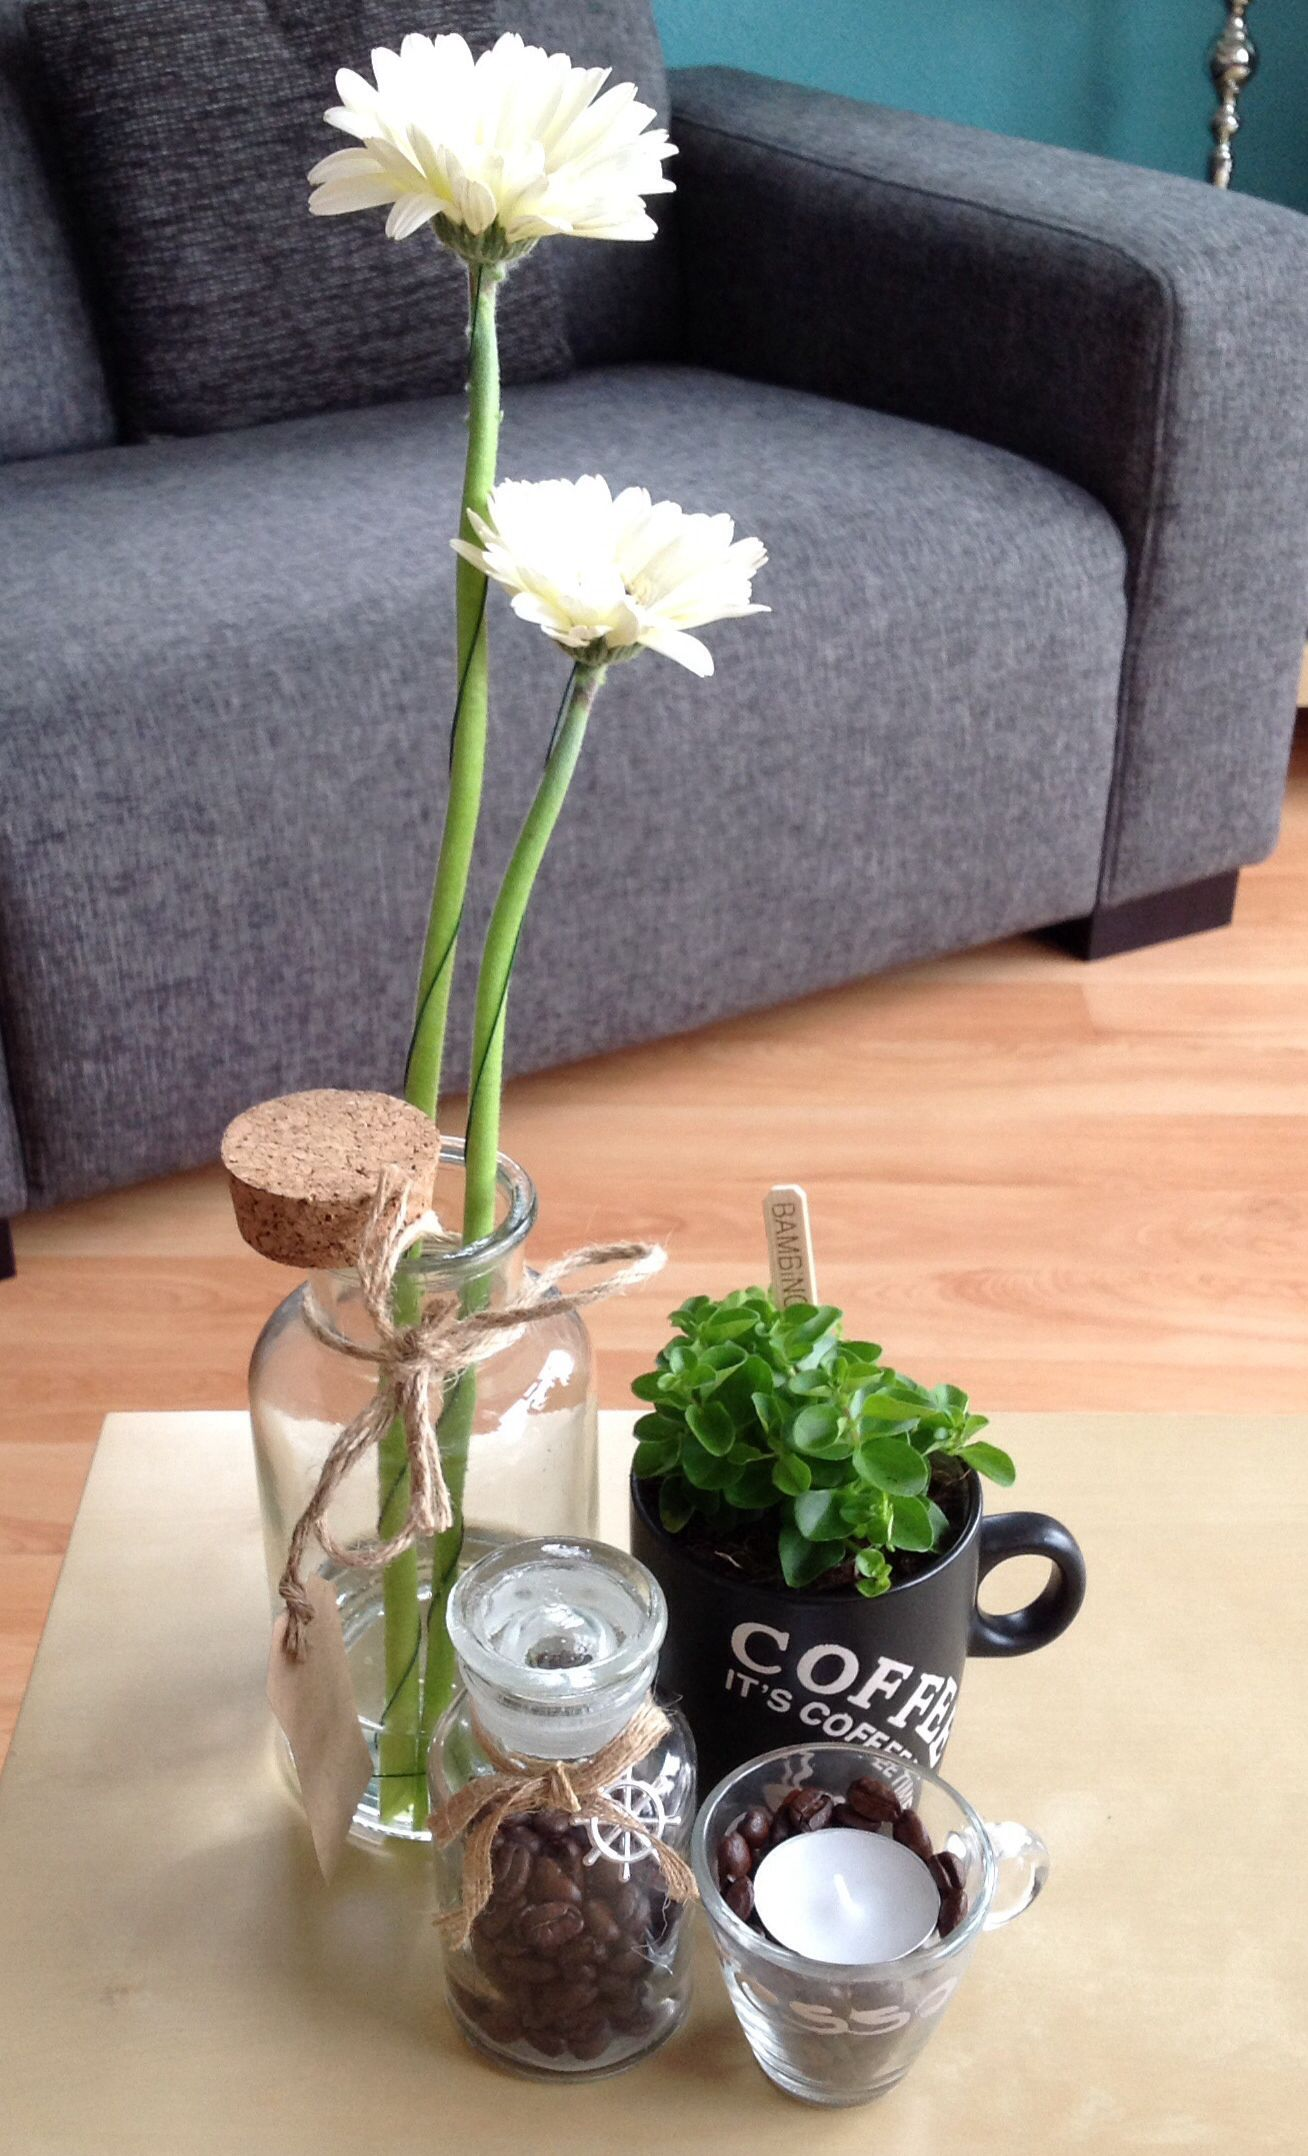 Coffee table decoration coffee theme